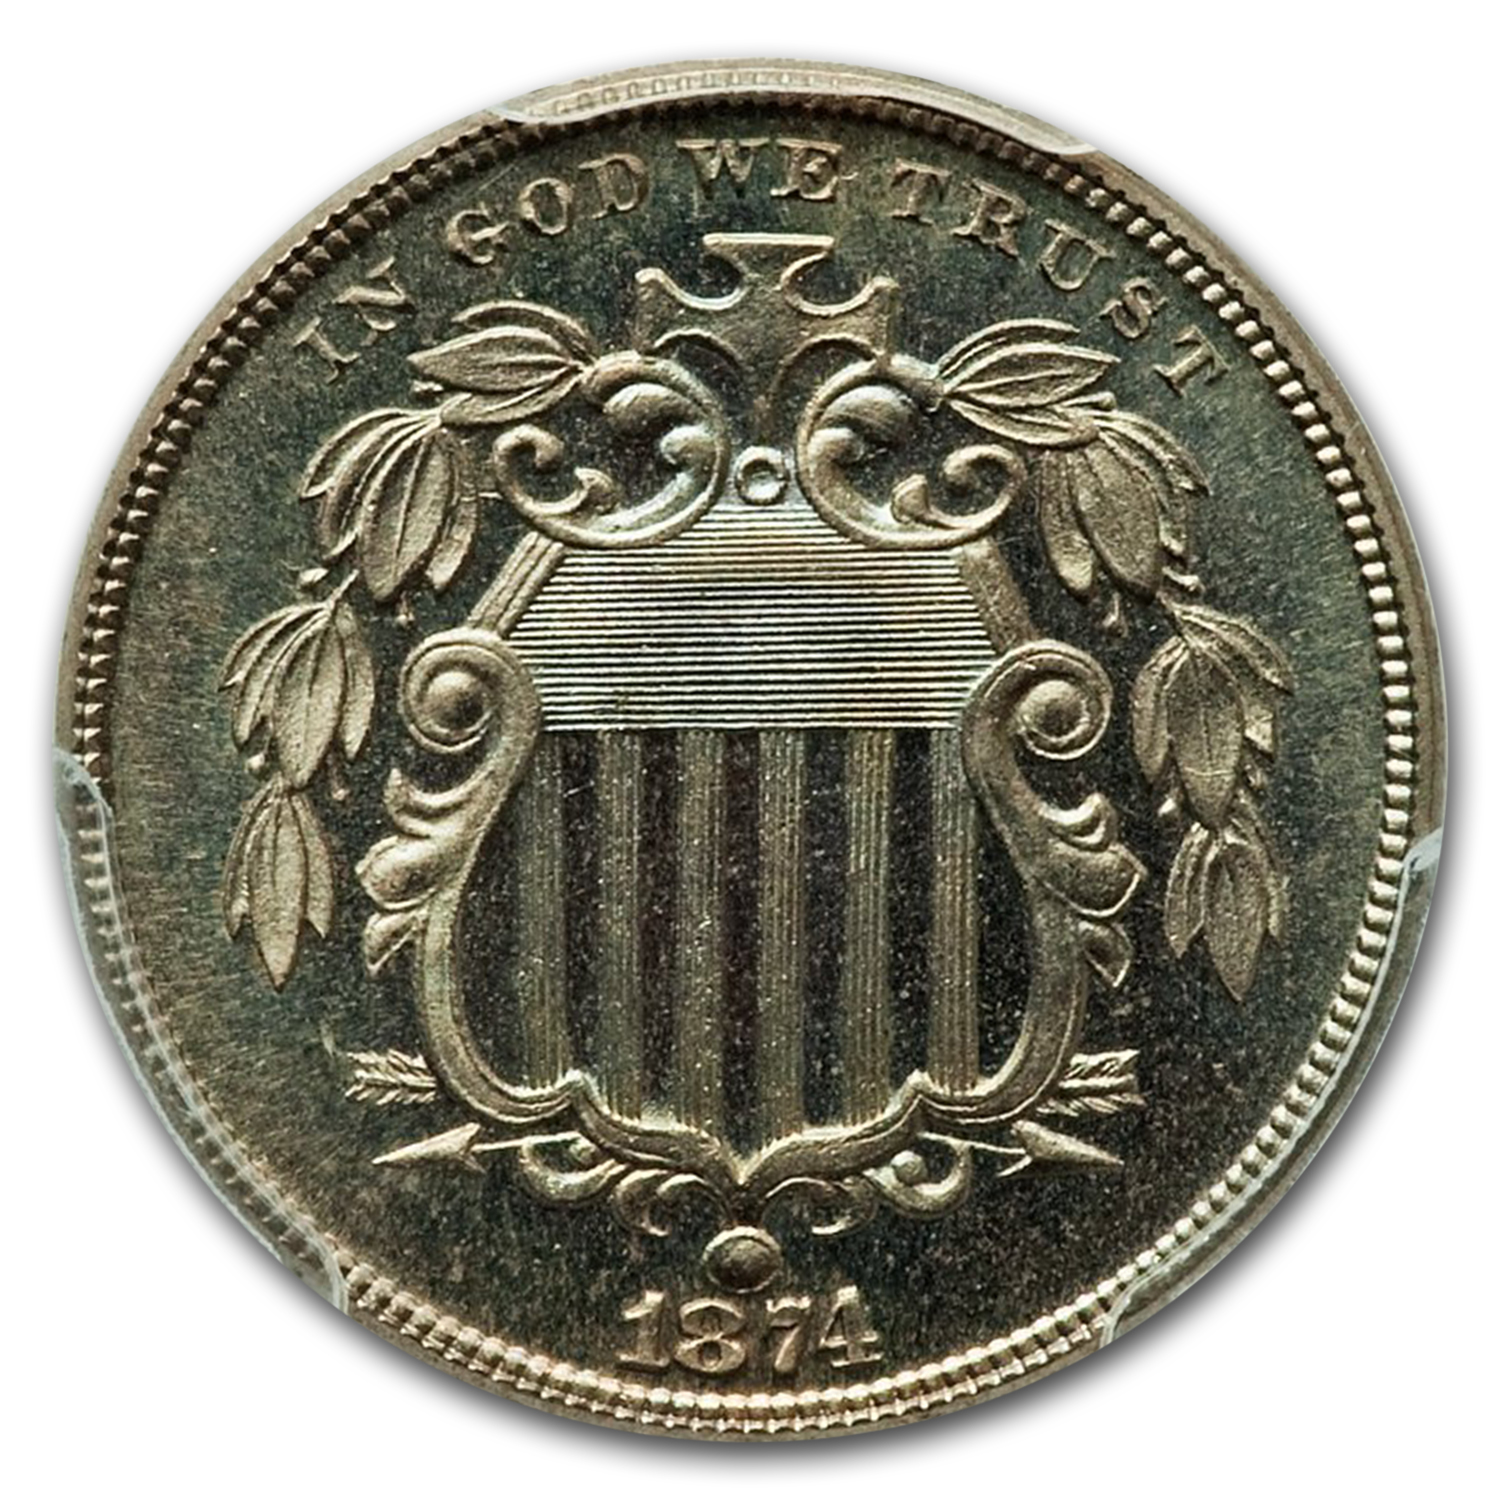 1874 5C Shield Nickel Proof - 65 PCGS